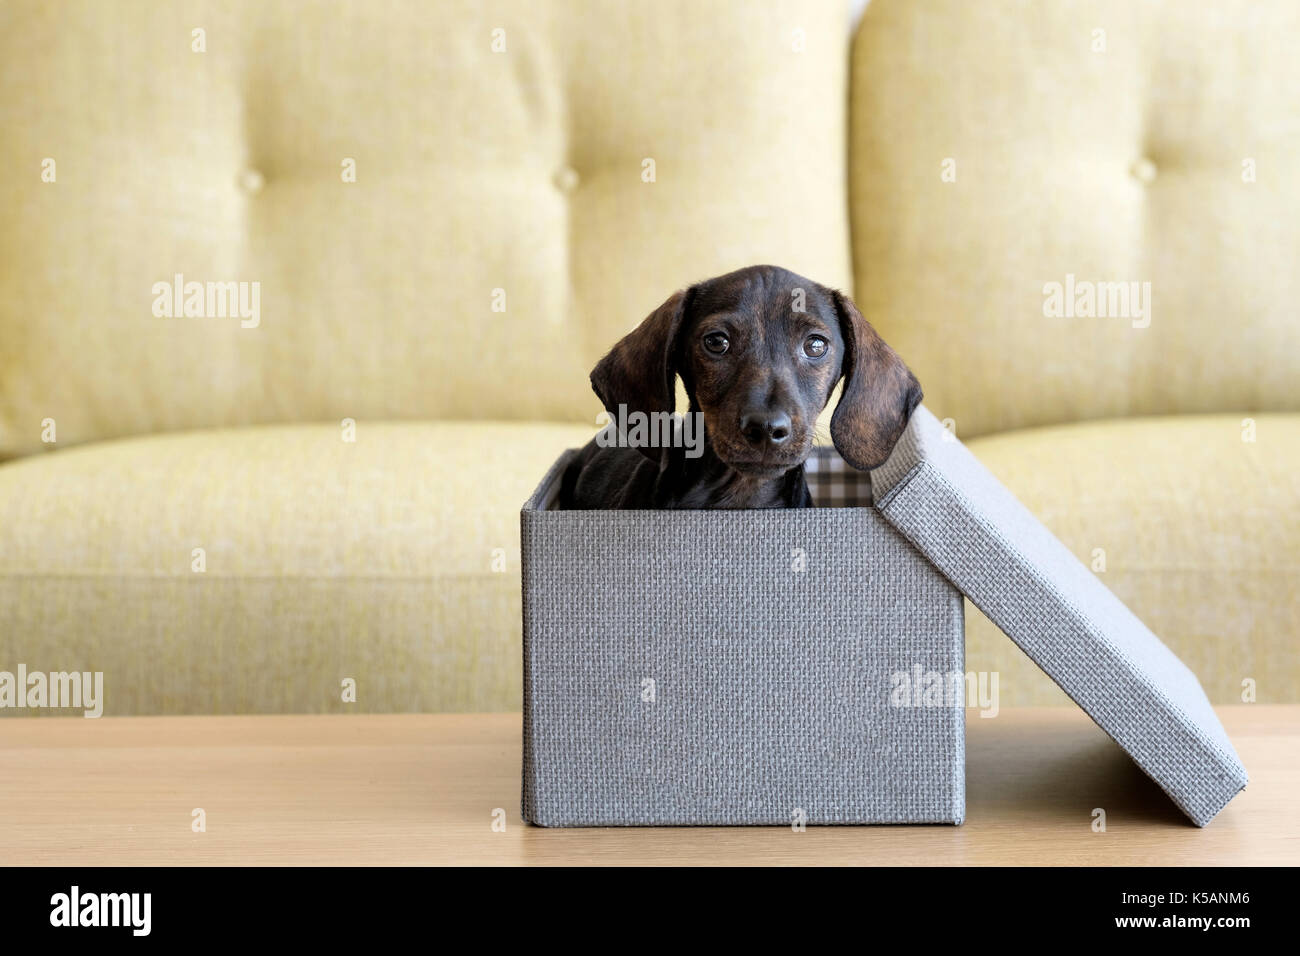 A puppy Dachshund dog inside a tweed finished box with its lid to one side. Looking as if the puppy has just arrived as a present - Stock Image